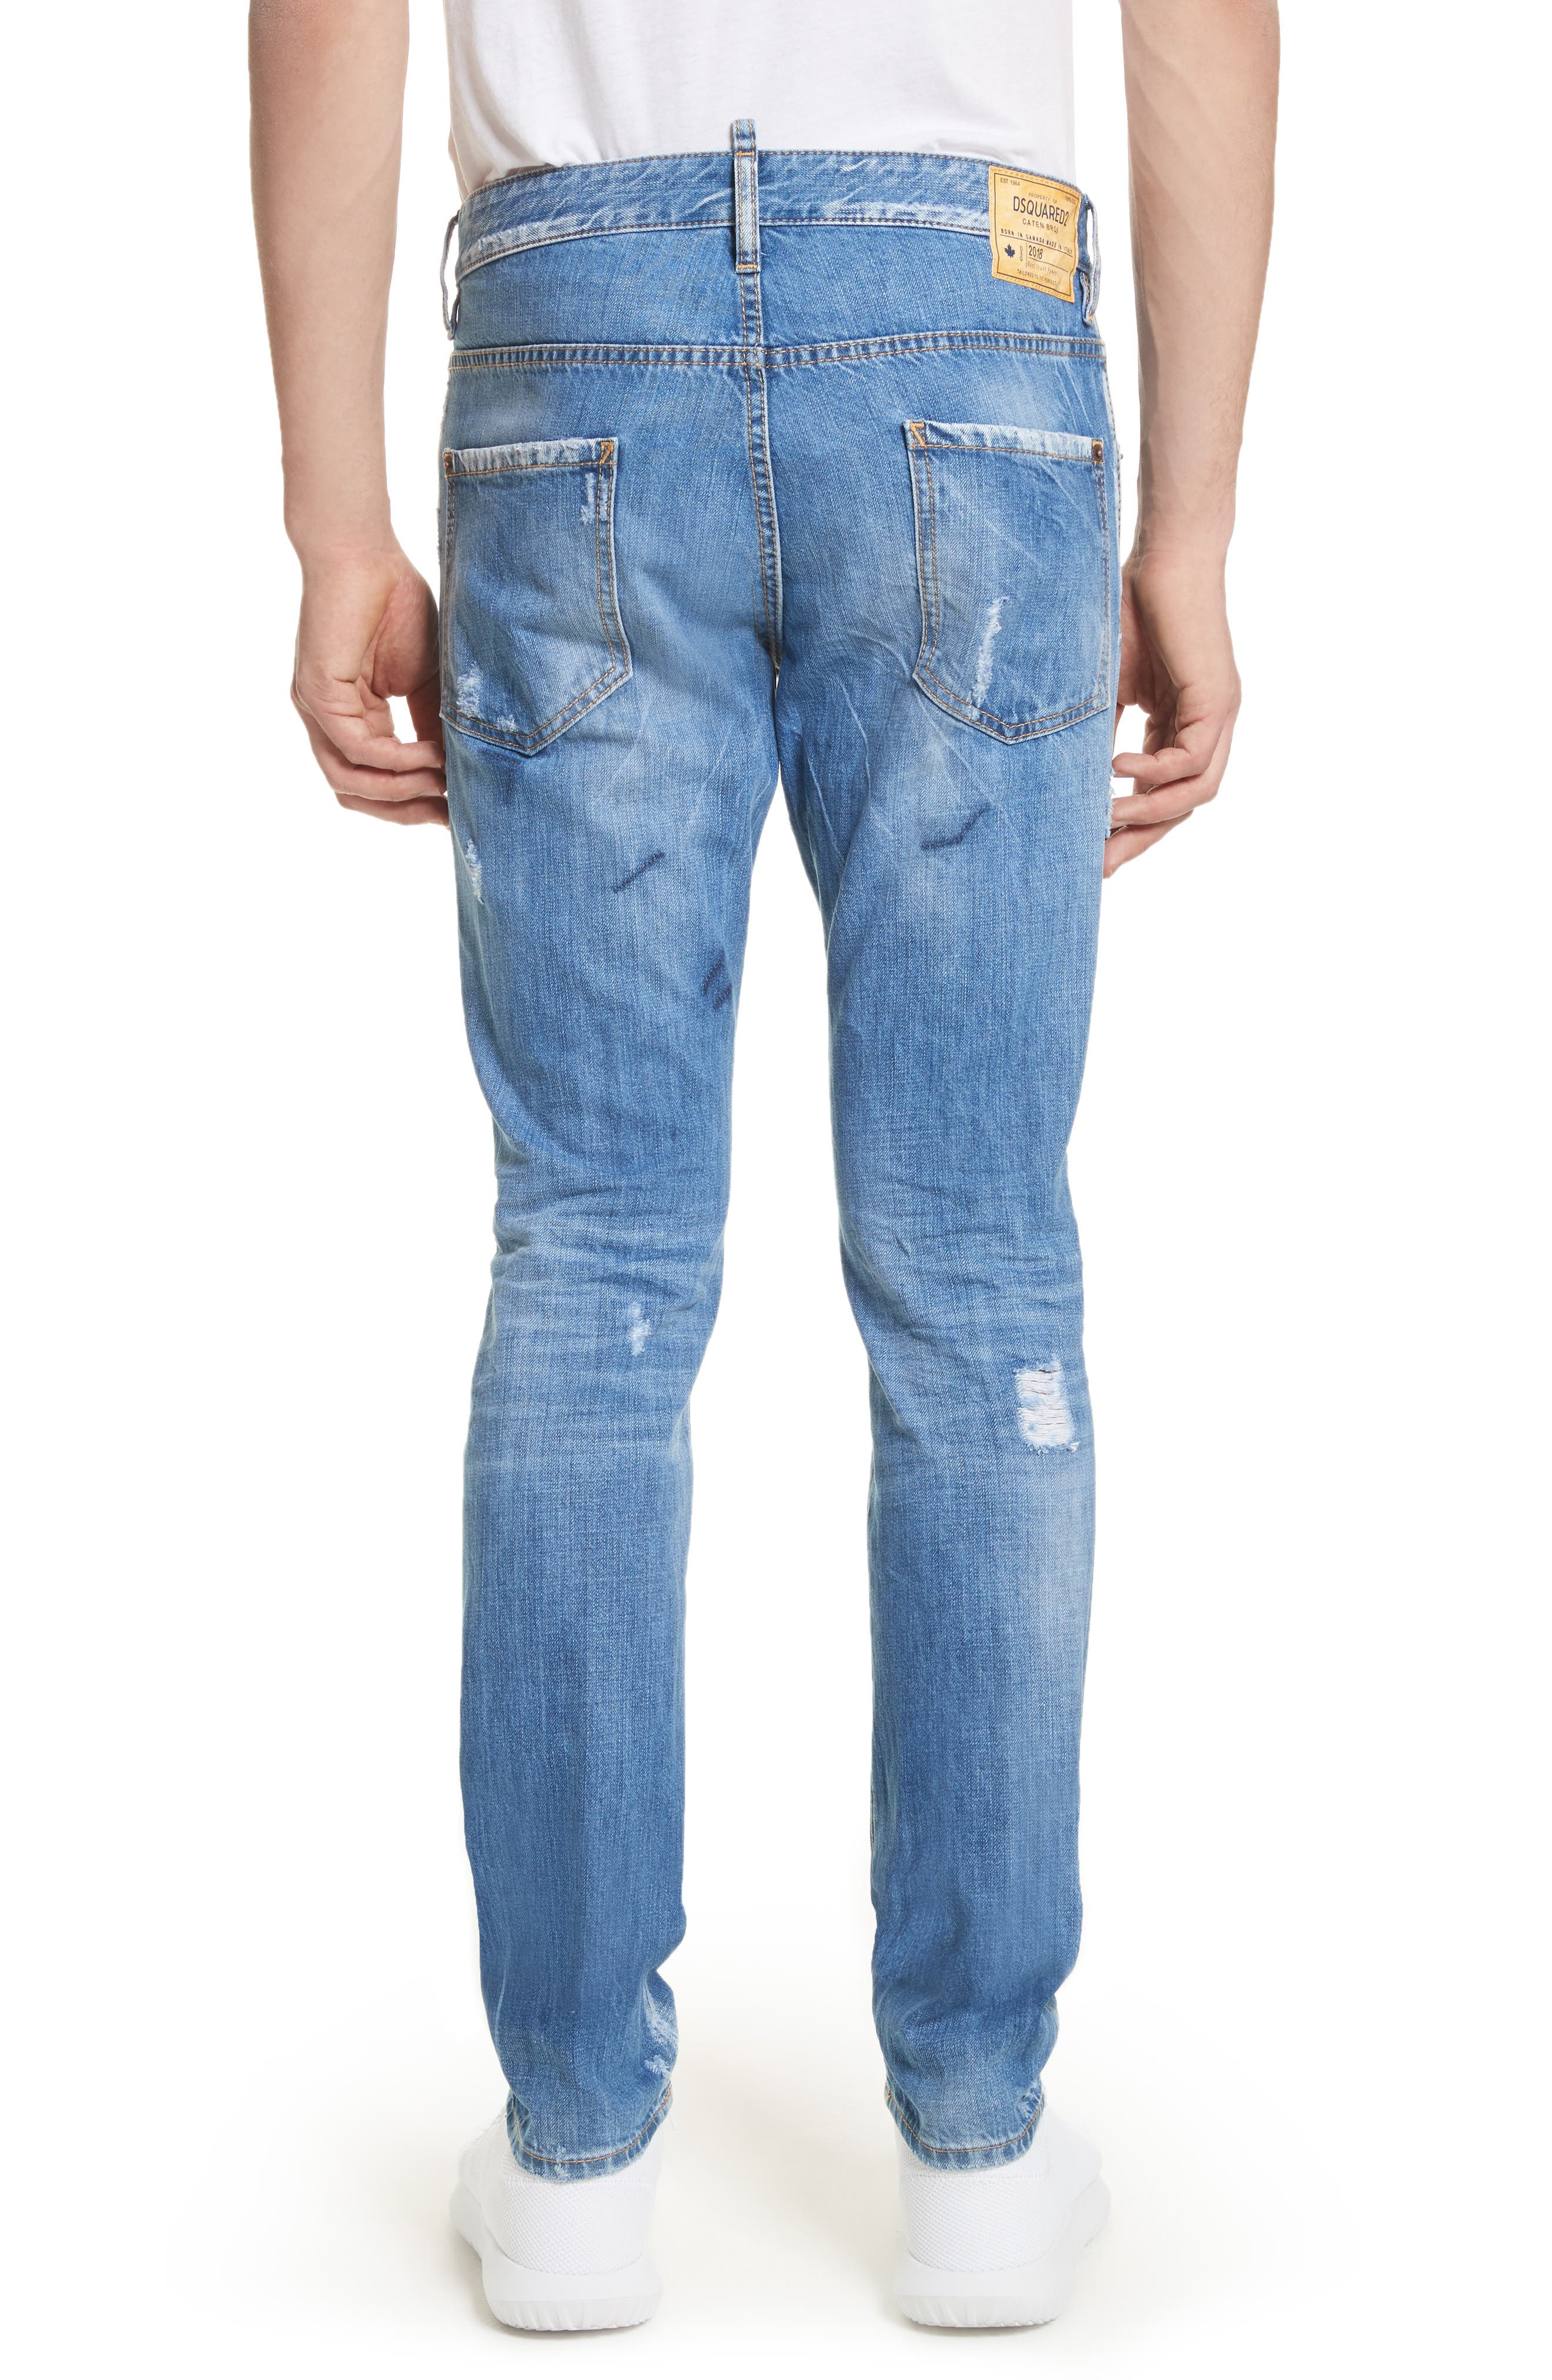 Cool Guy Skinny Fit Jeans,                             Alternate thumbnail 2, color,                             Navy/Blue